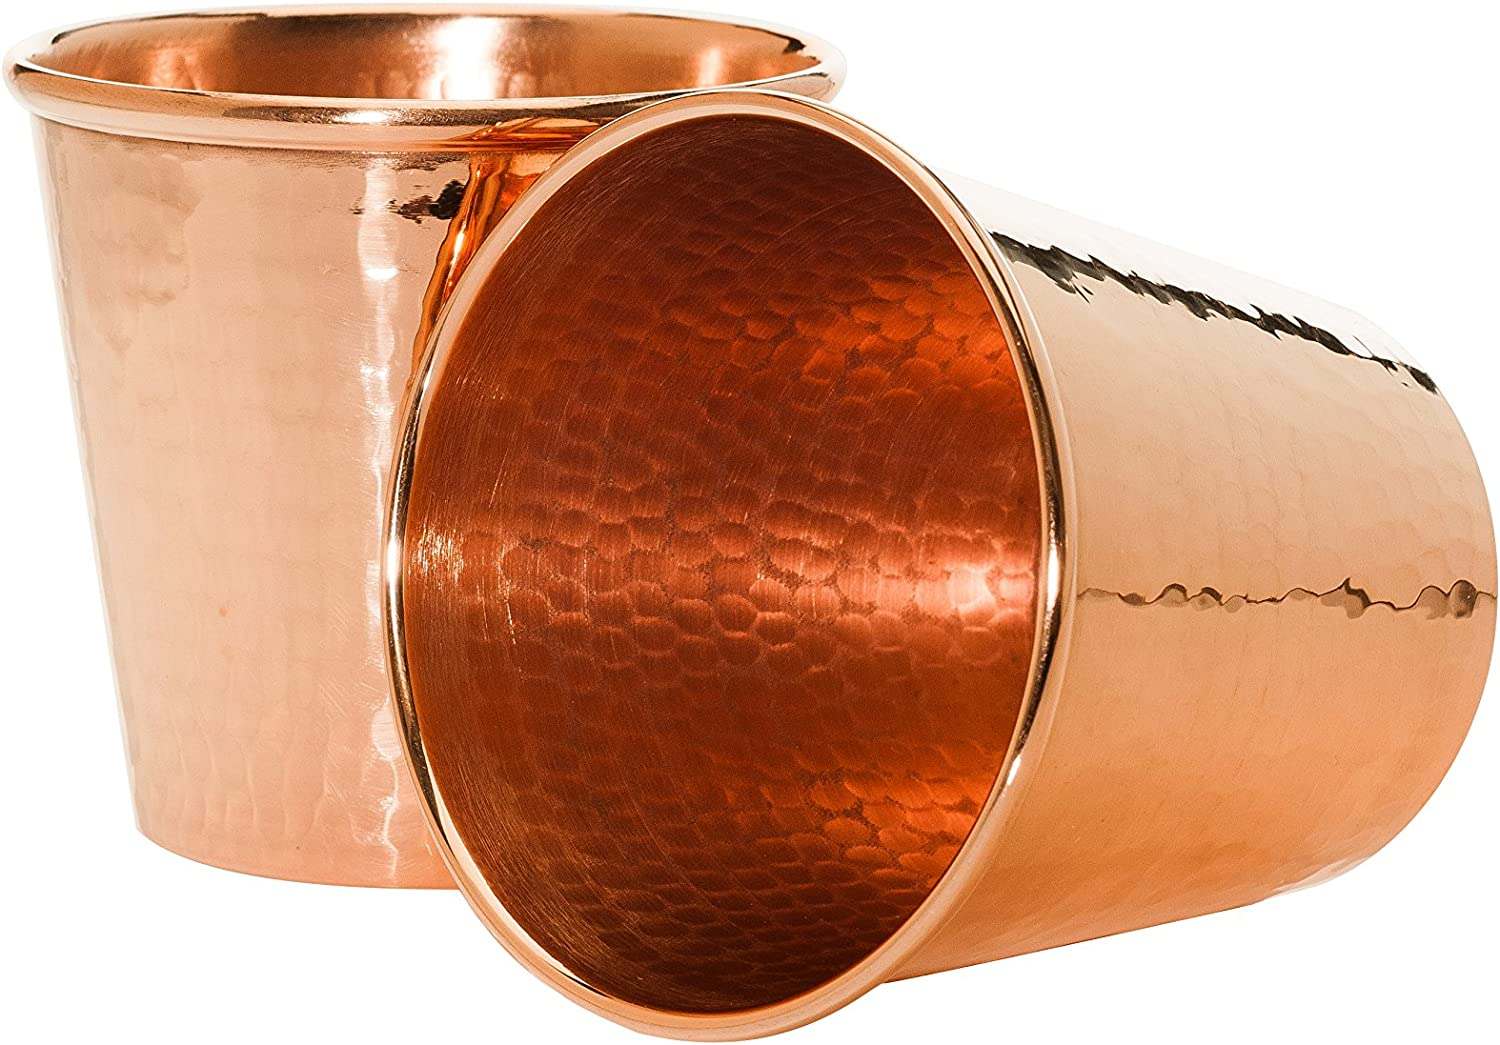 Sertodo Copper Cc 12 2 Moscow Mule Mug Without Handle Hand Hammered 100 Pure Copper Apa Cup 12 Oz Set Of 2 Kitchen Dining